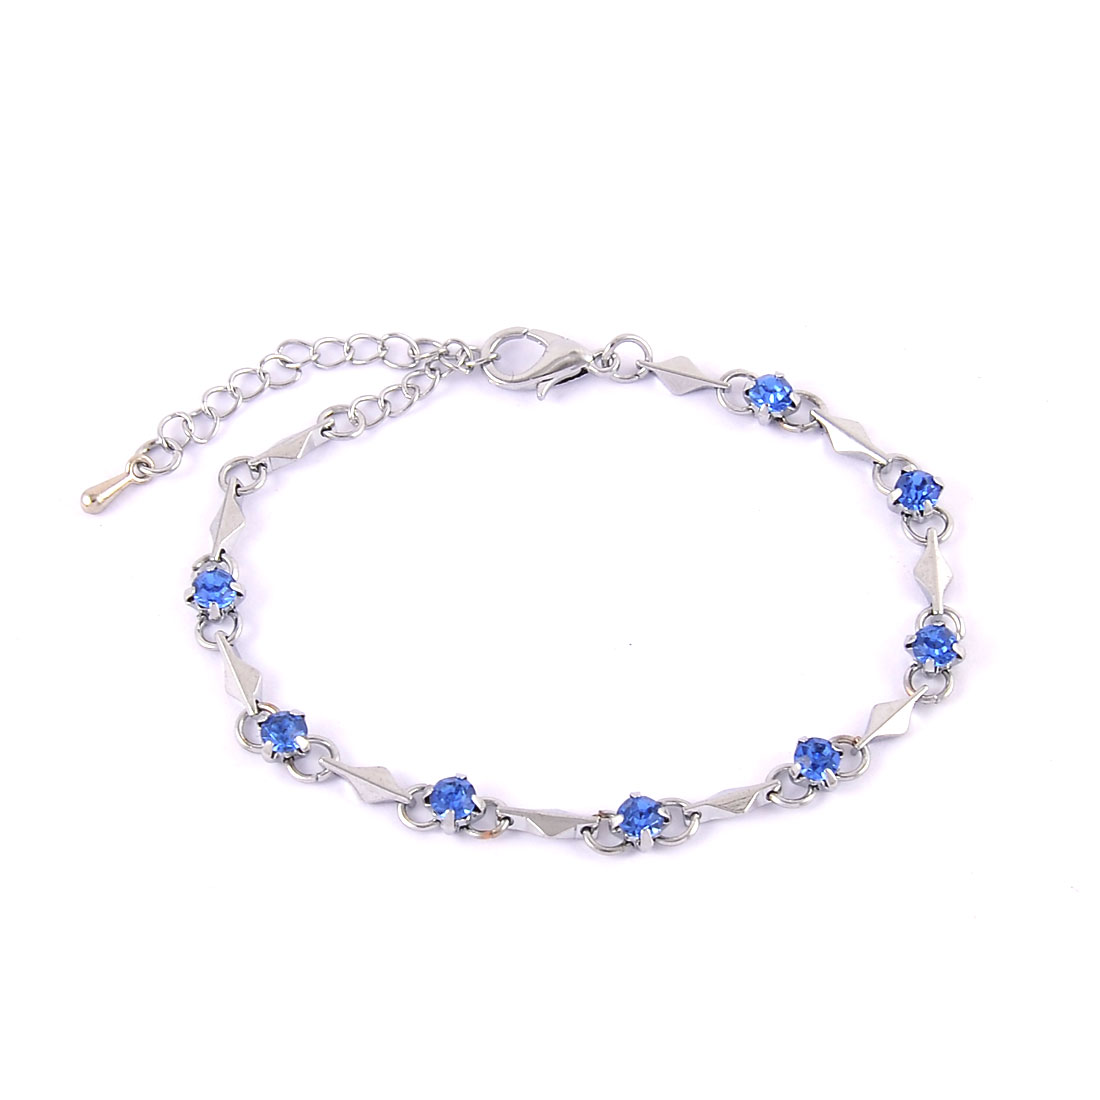 Women Metal Decorate Manmade Beaded Wrist Bangle Bracelet Dodger Blue